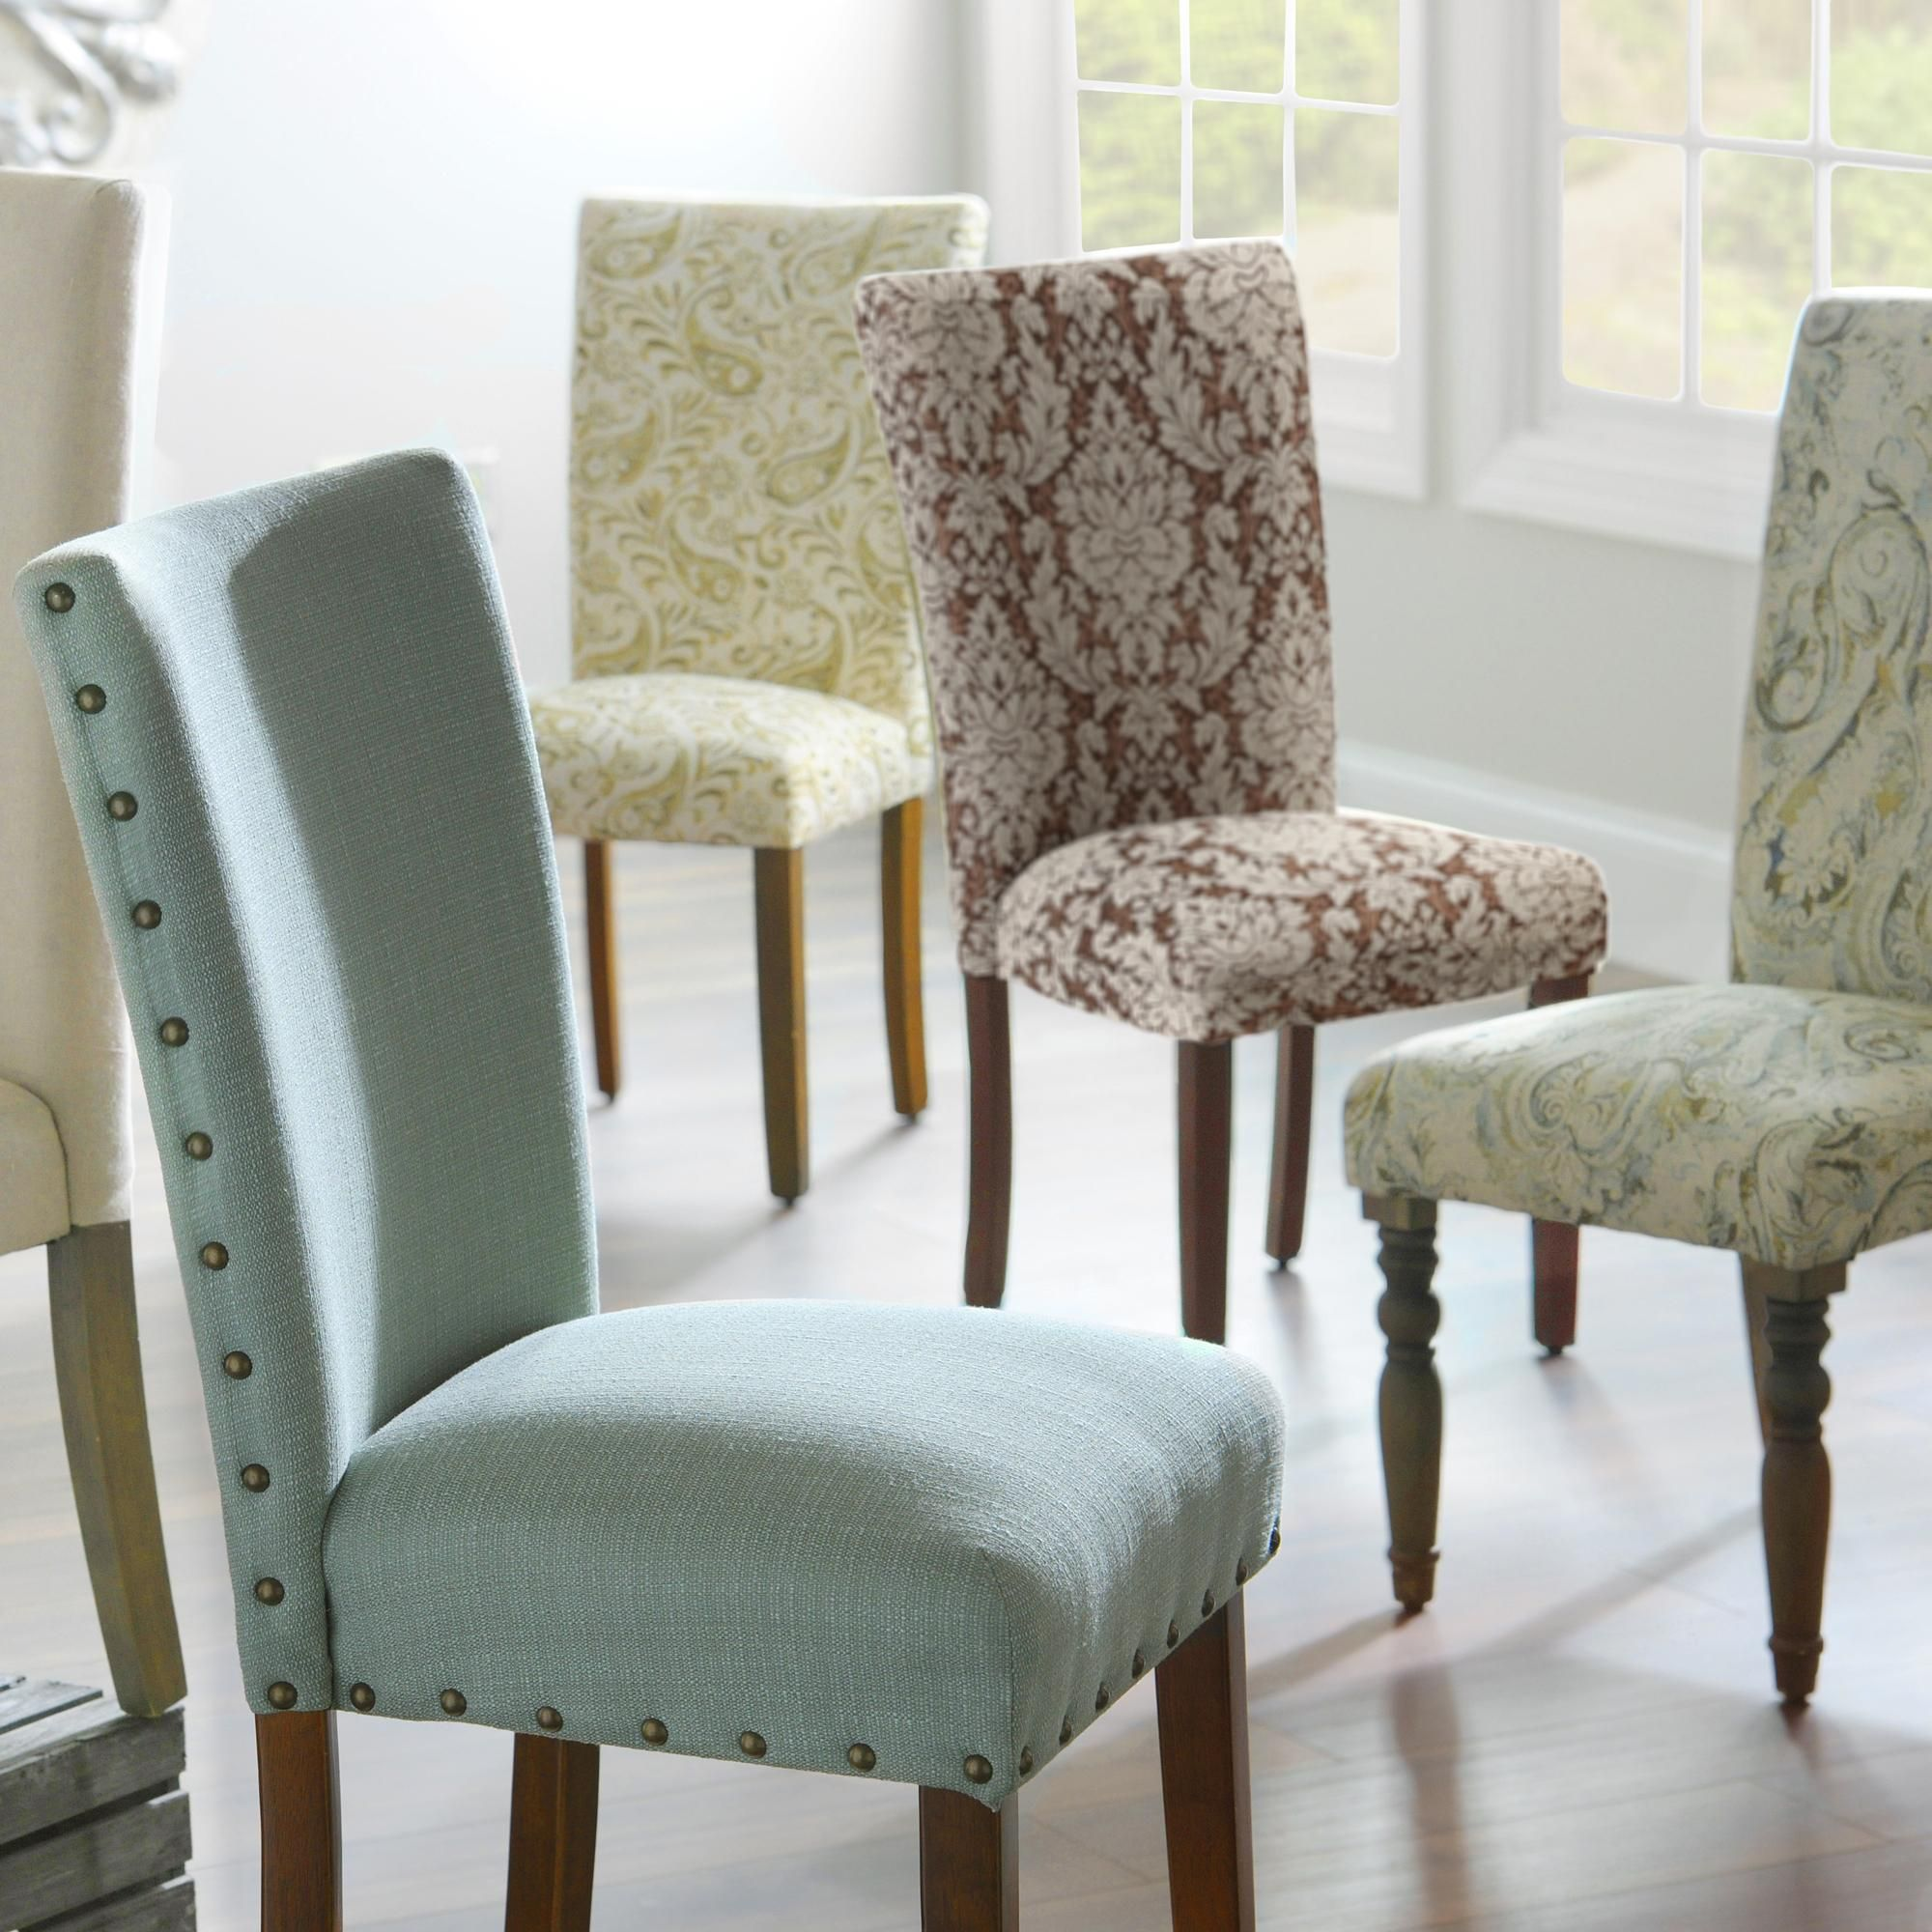 our very popular parsons chairs are on sale! save $20 off through